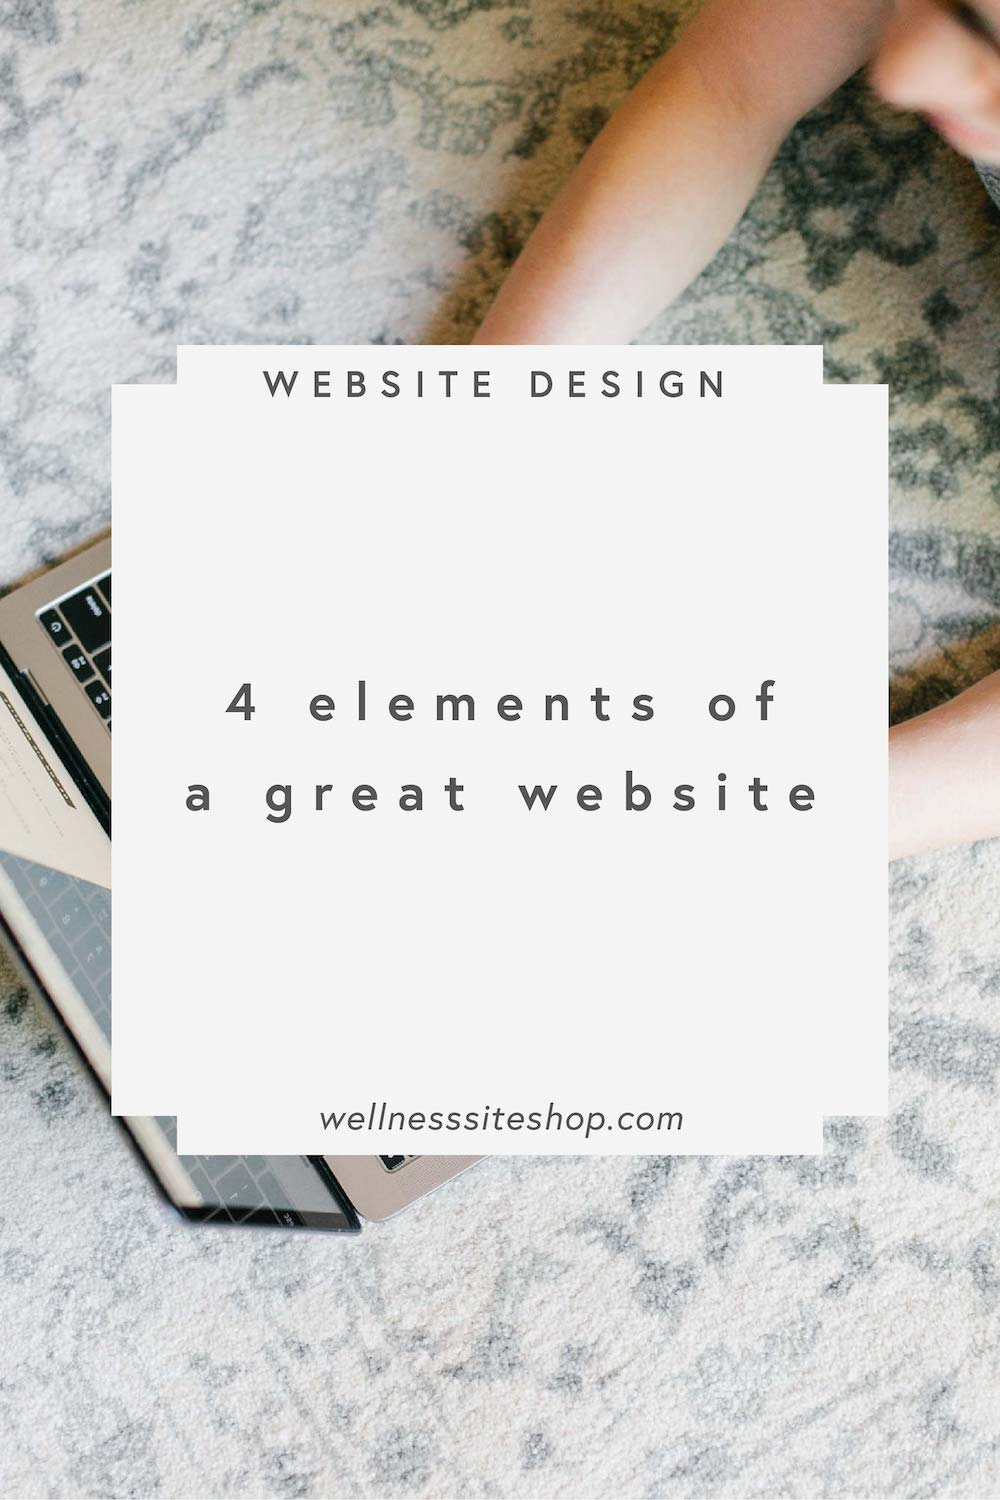 4 elements of a great website.jpg